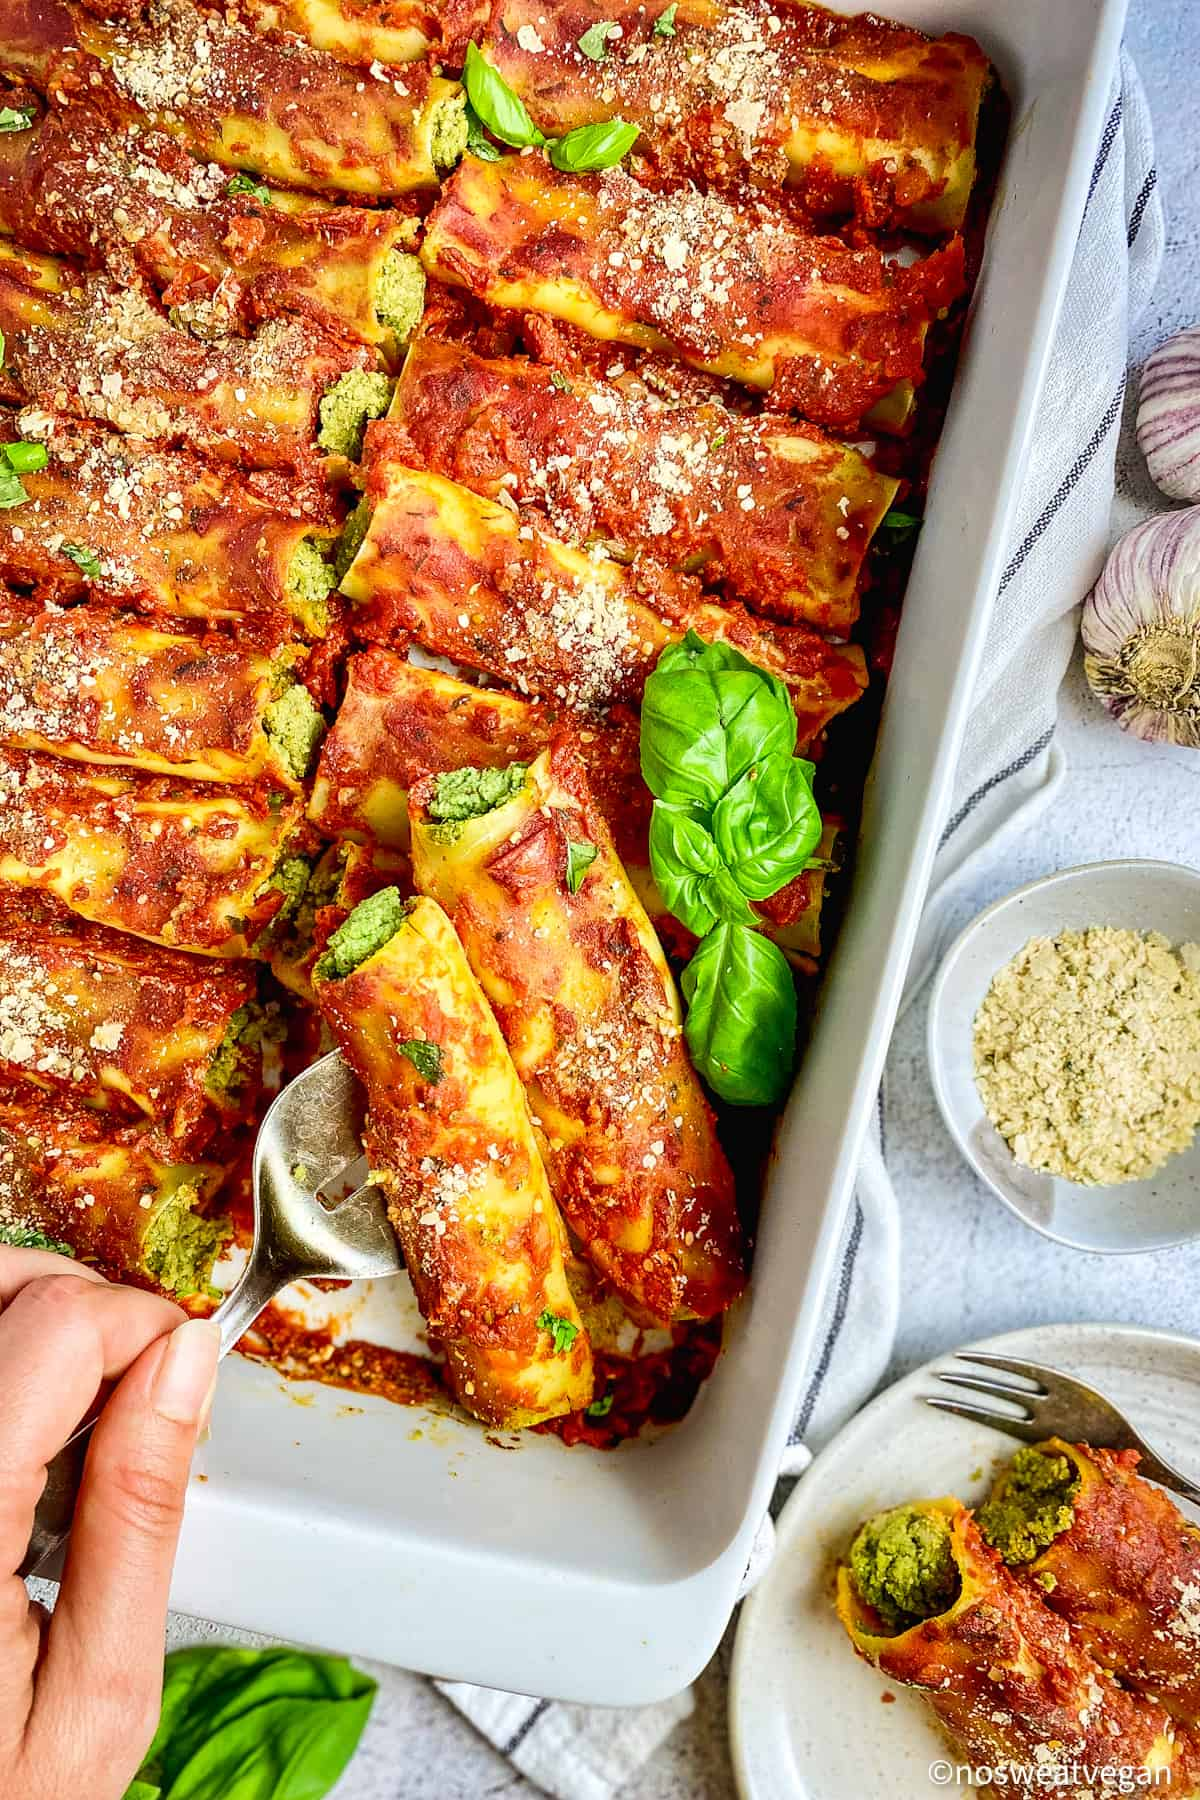 Vegan cannelloni in pan with hand serving.